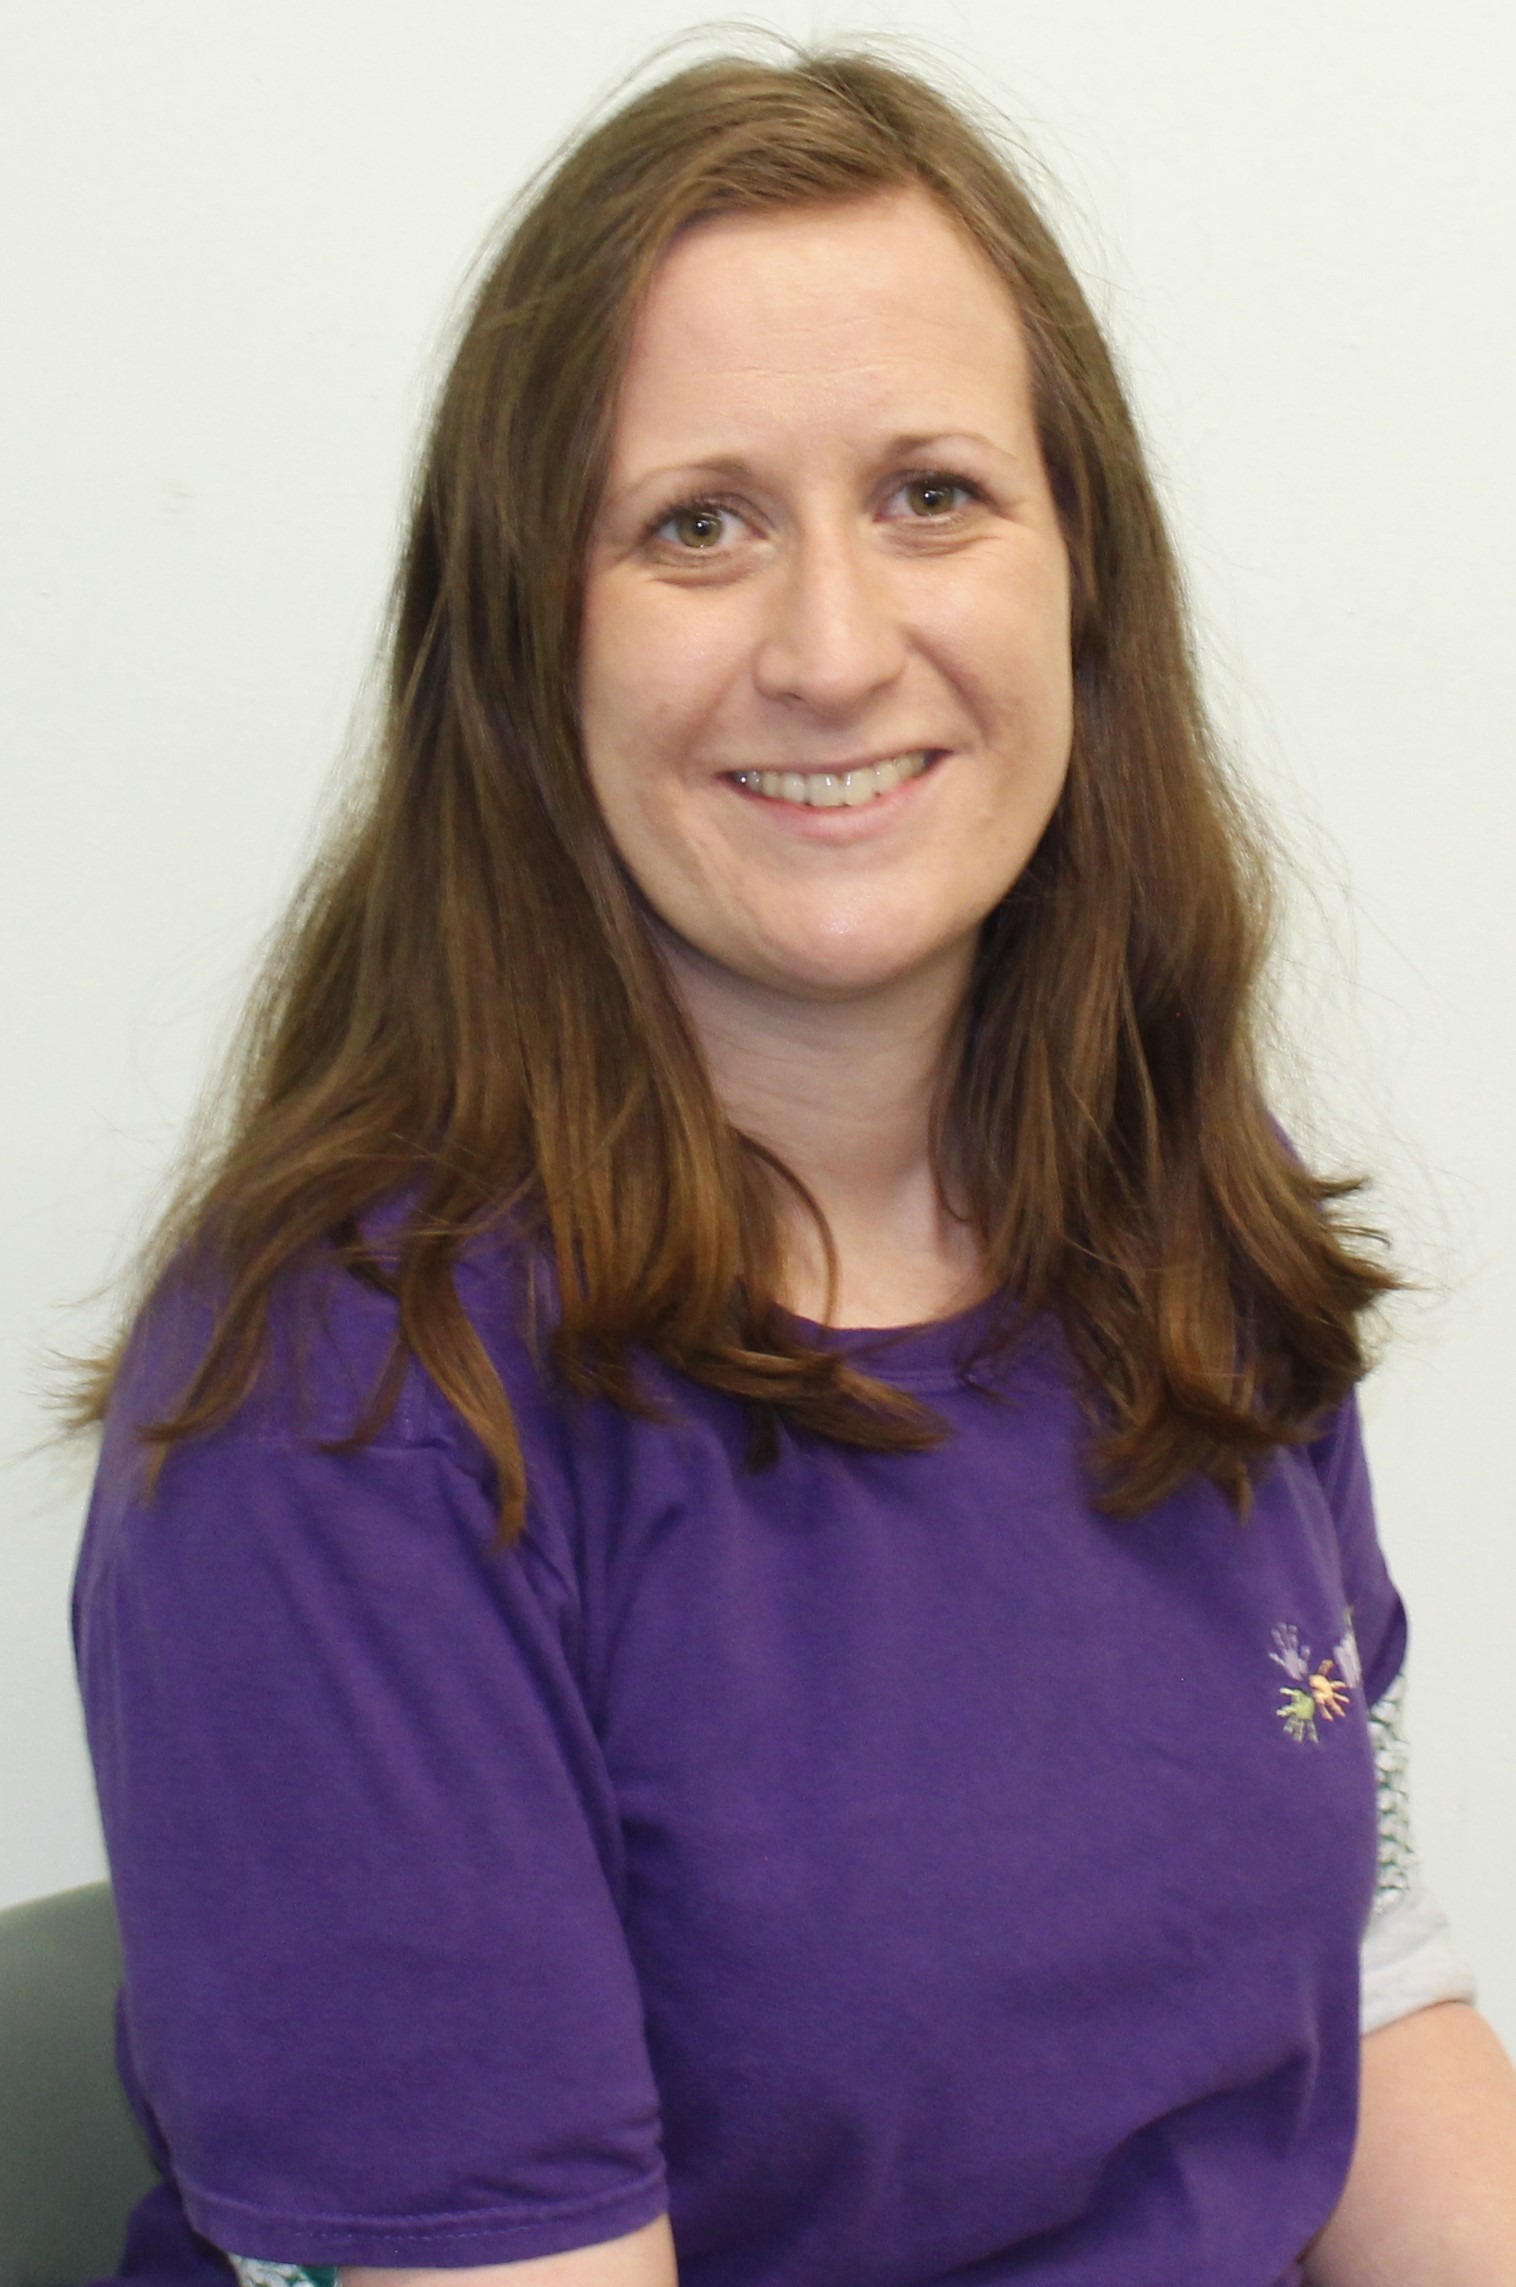 Julie Coackley Childcare Director